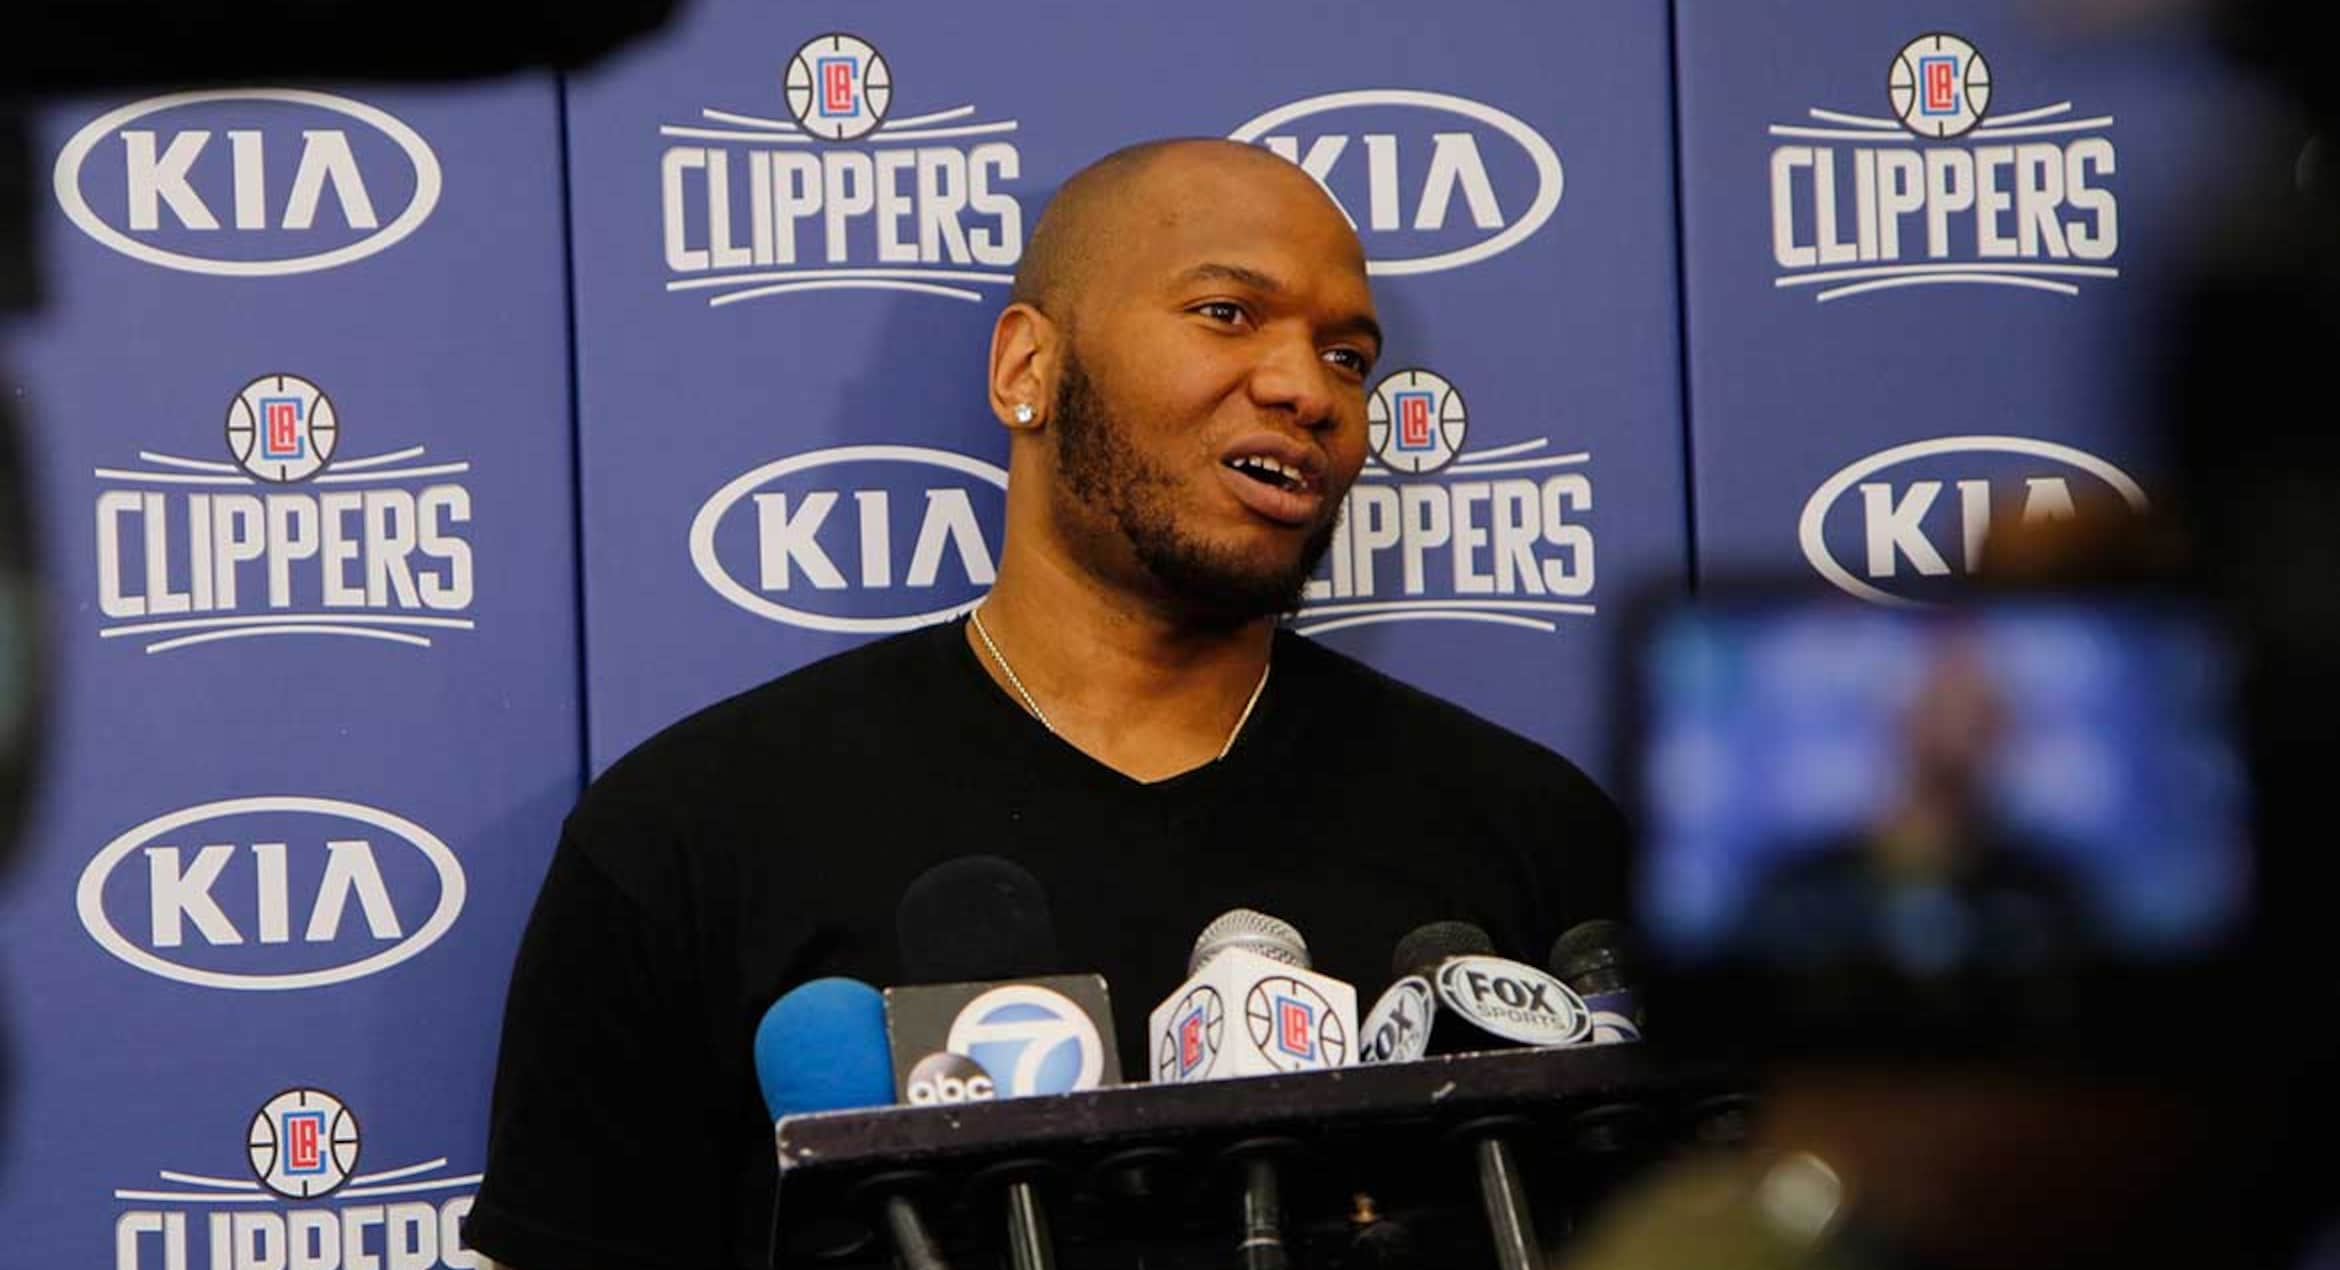 The L.A. Clippers today announced that they have signed free agent center/power forward Marreese Speights.